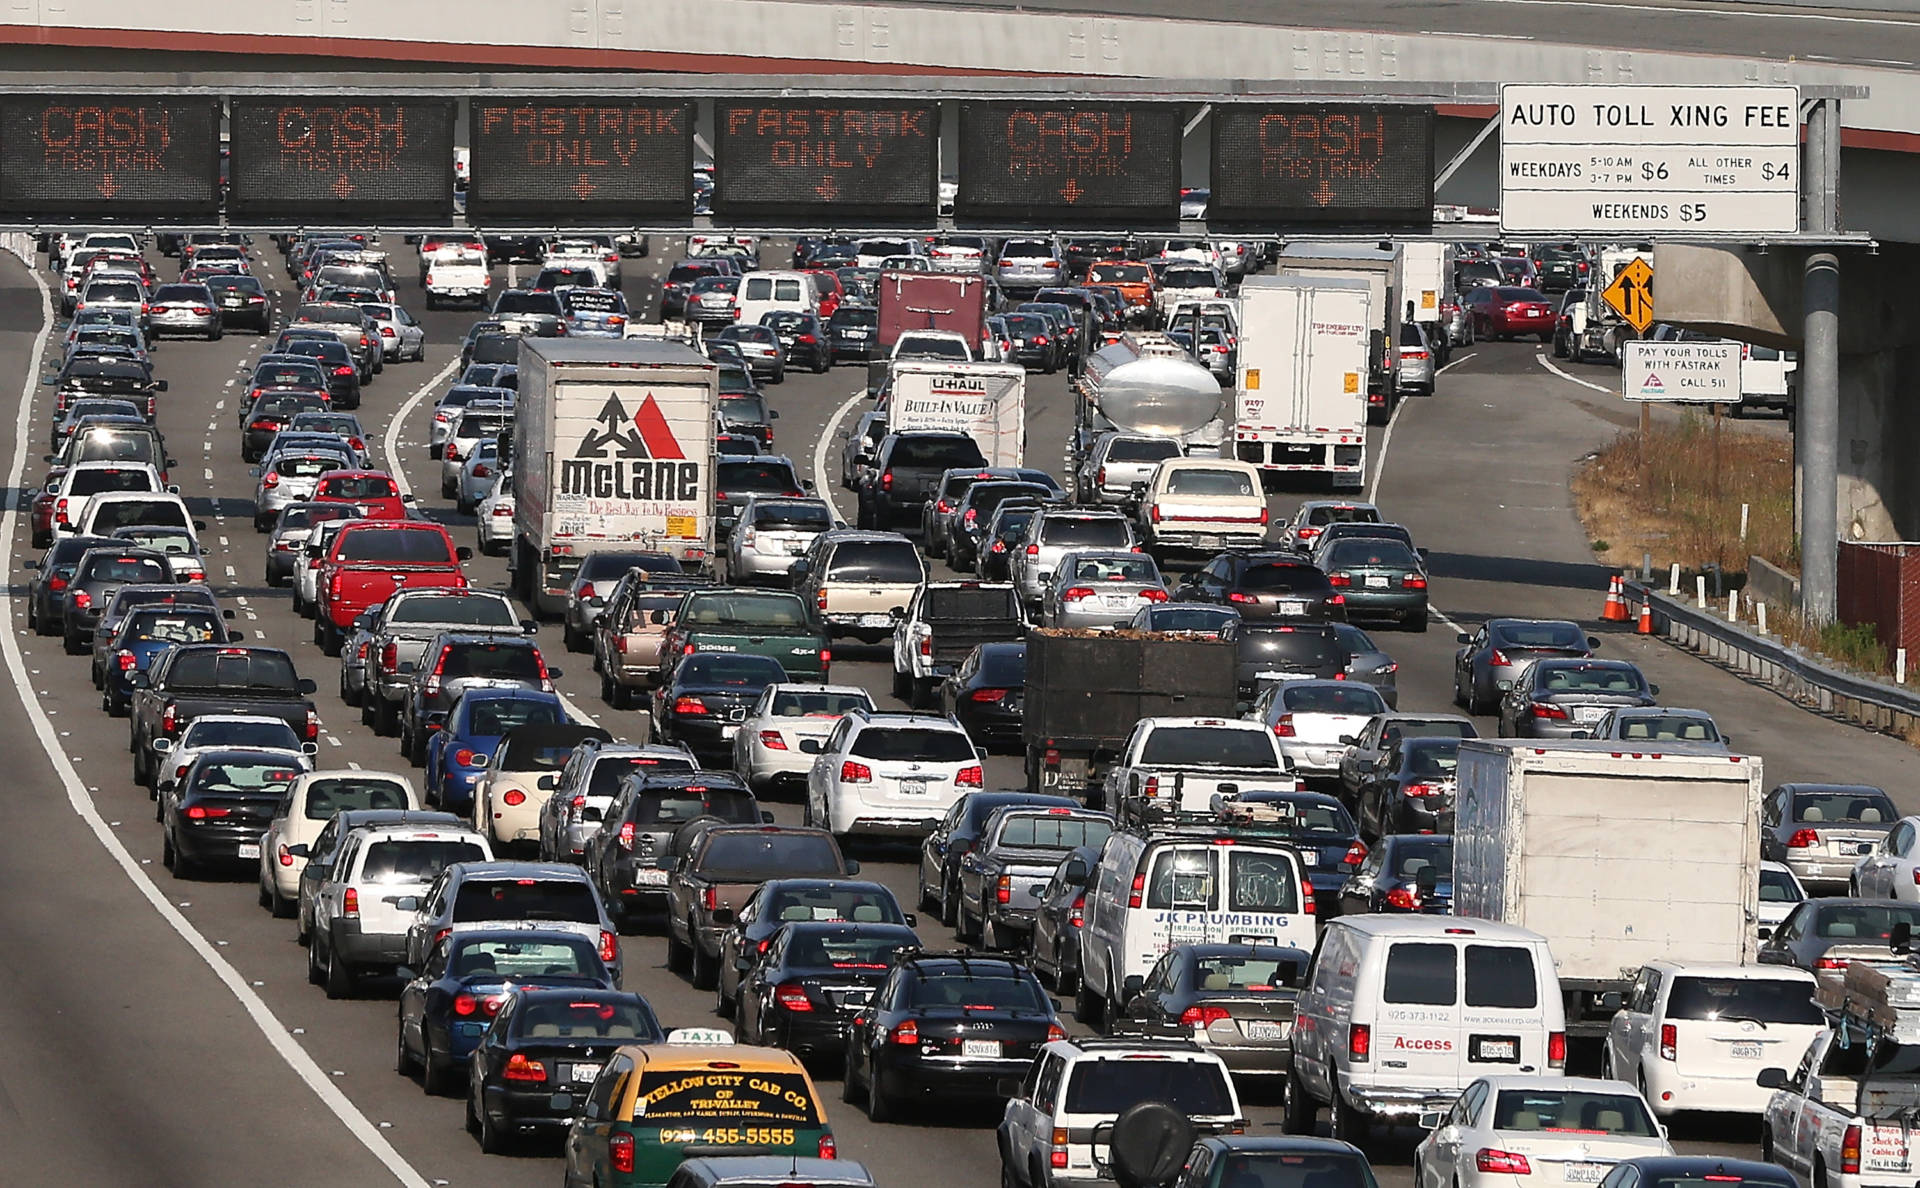 Commuter traffic at the Bay Bridge toll plaze pictured during the July 2013 BART strike.  Justin Sullivan/Getty Images